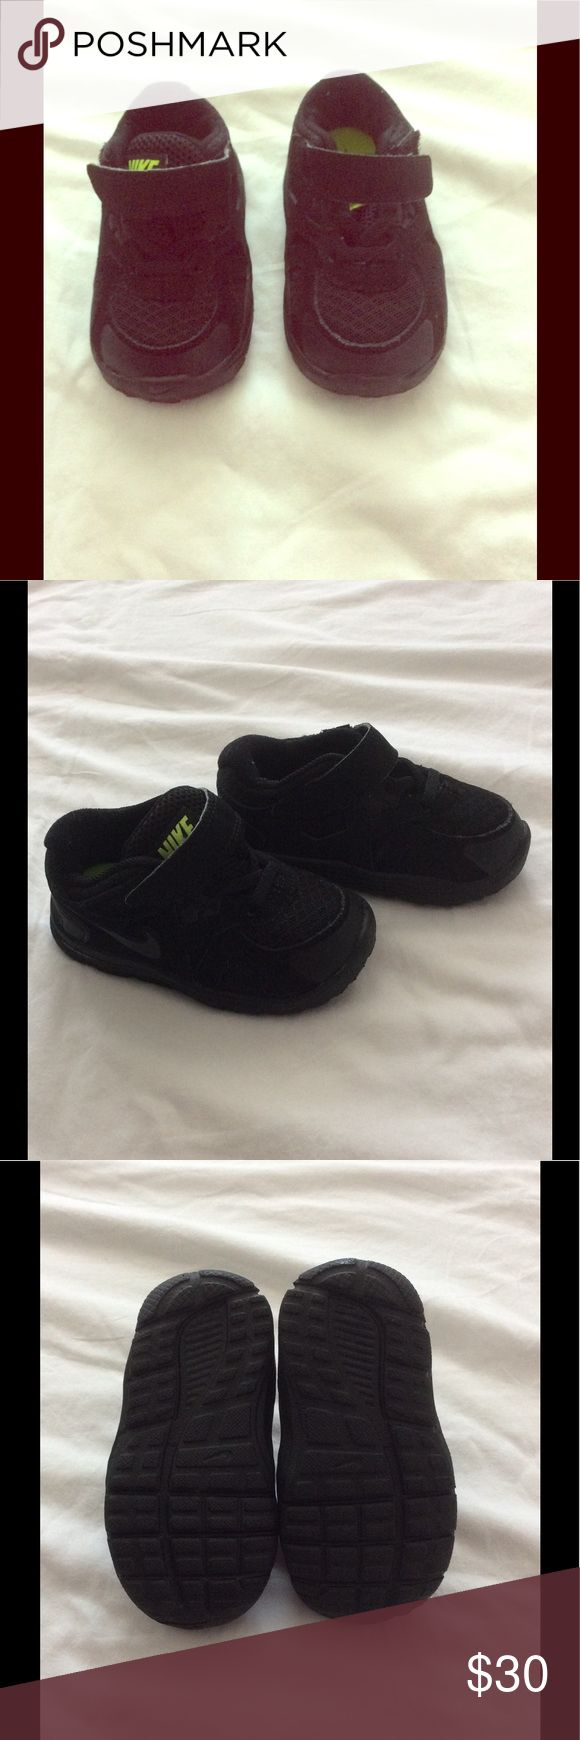 Baby Nike shoes! Brand new, no box. Size 5 baby. Nike Shoes Sneakers